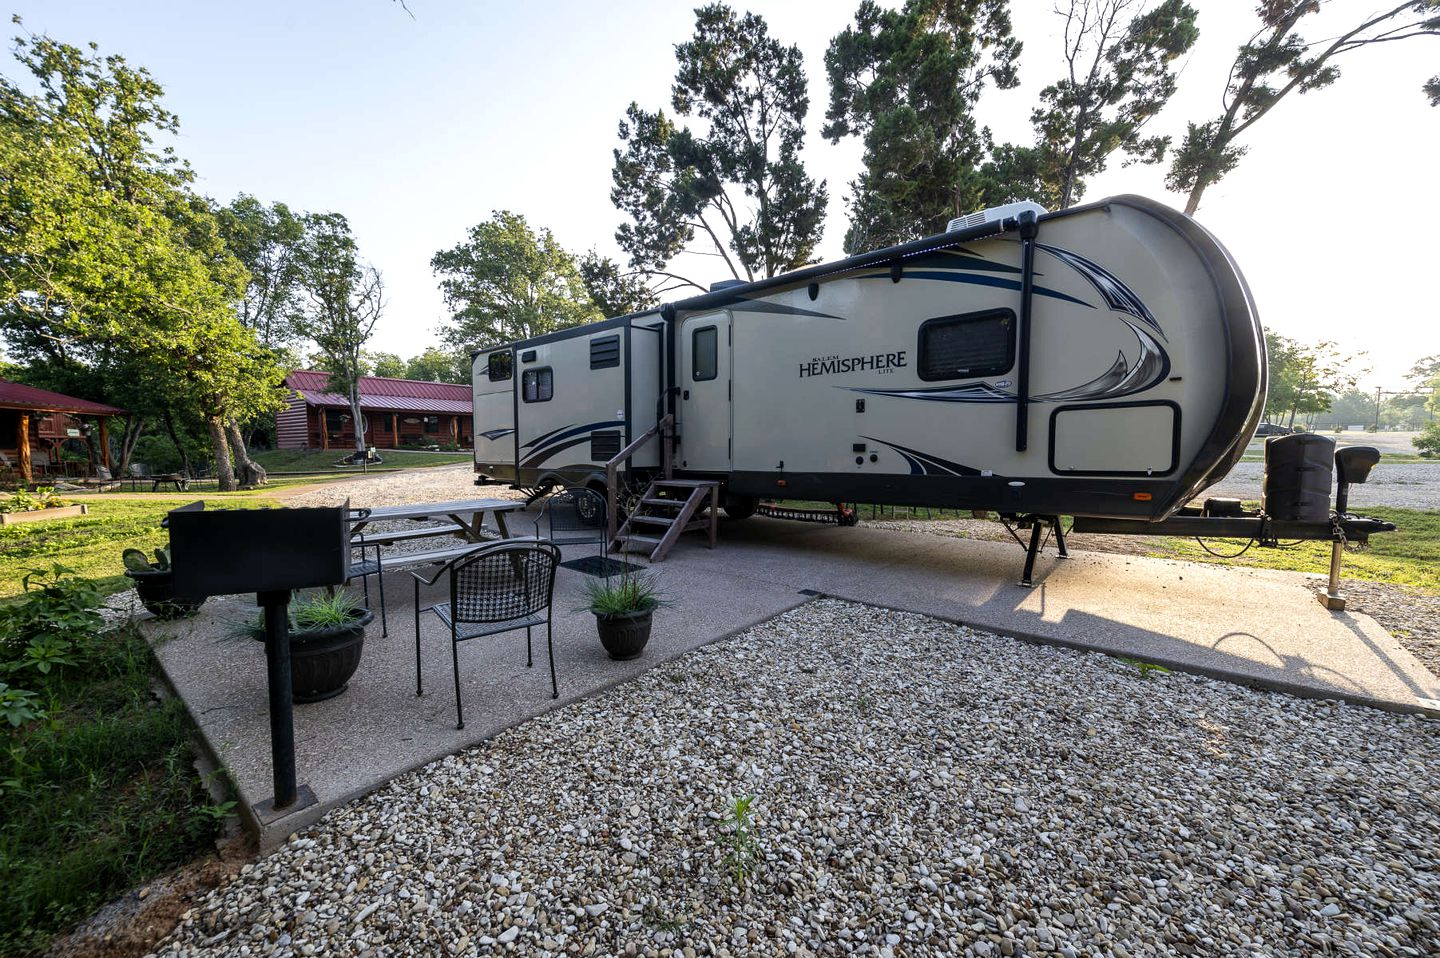 Caravans (Waco, Texas, United States of America)